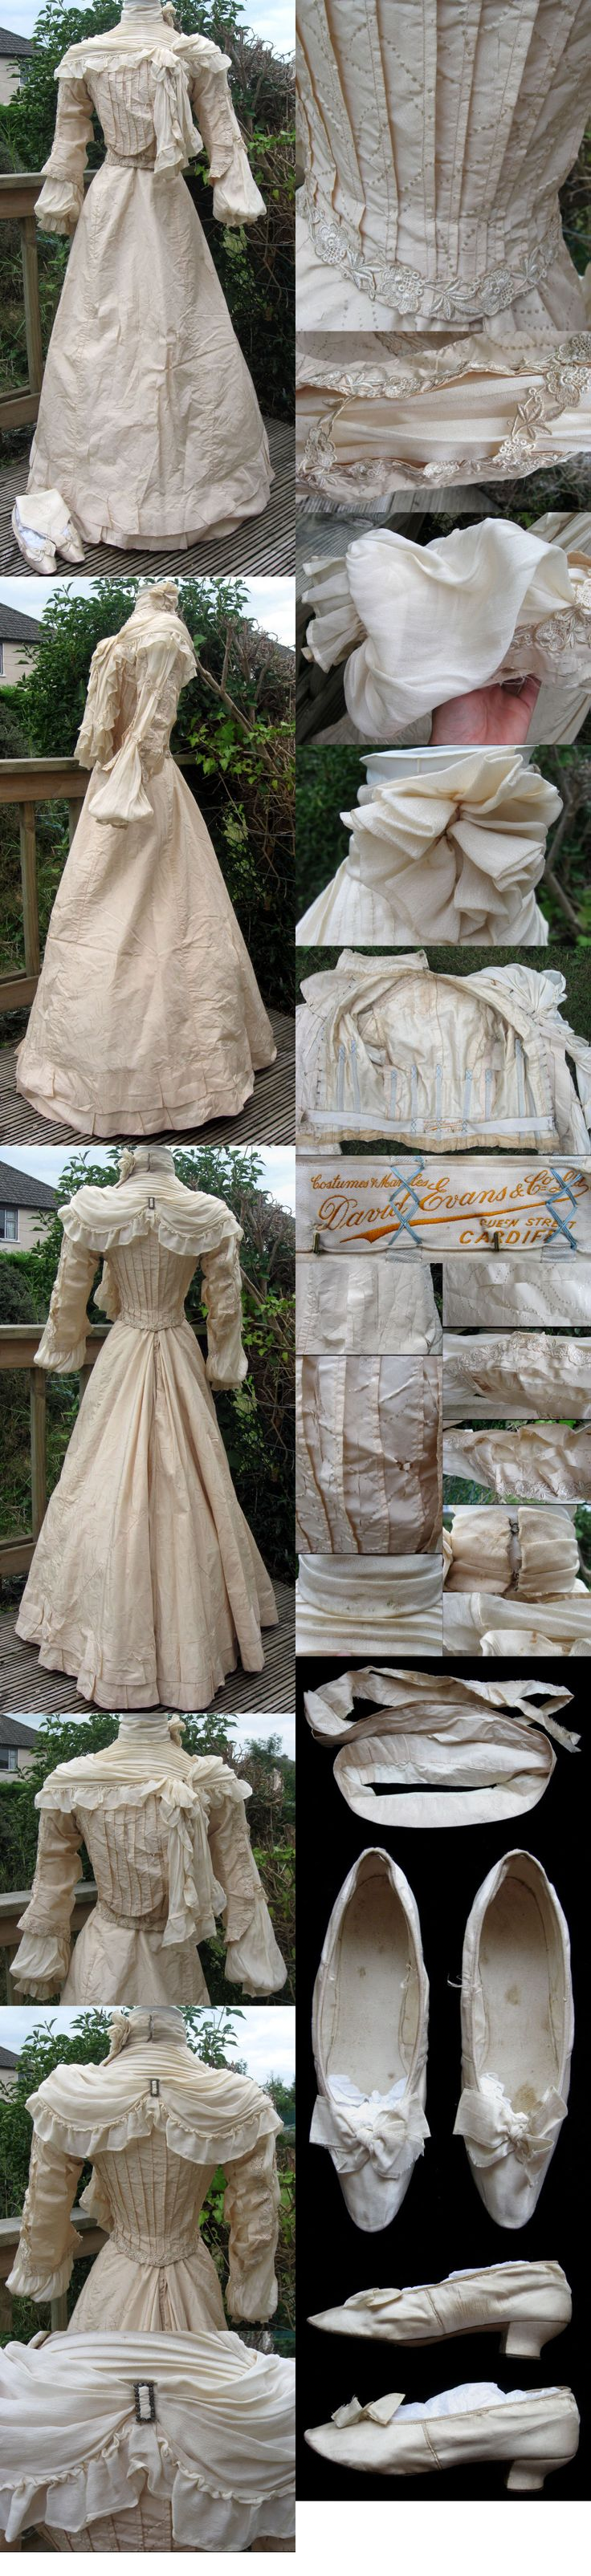 Late Victorian Silk Chiffon Wedding Dress Outfit 1900 with Shoes. From ebay seller madaboutfans.